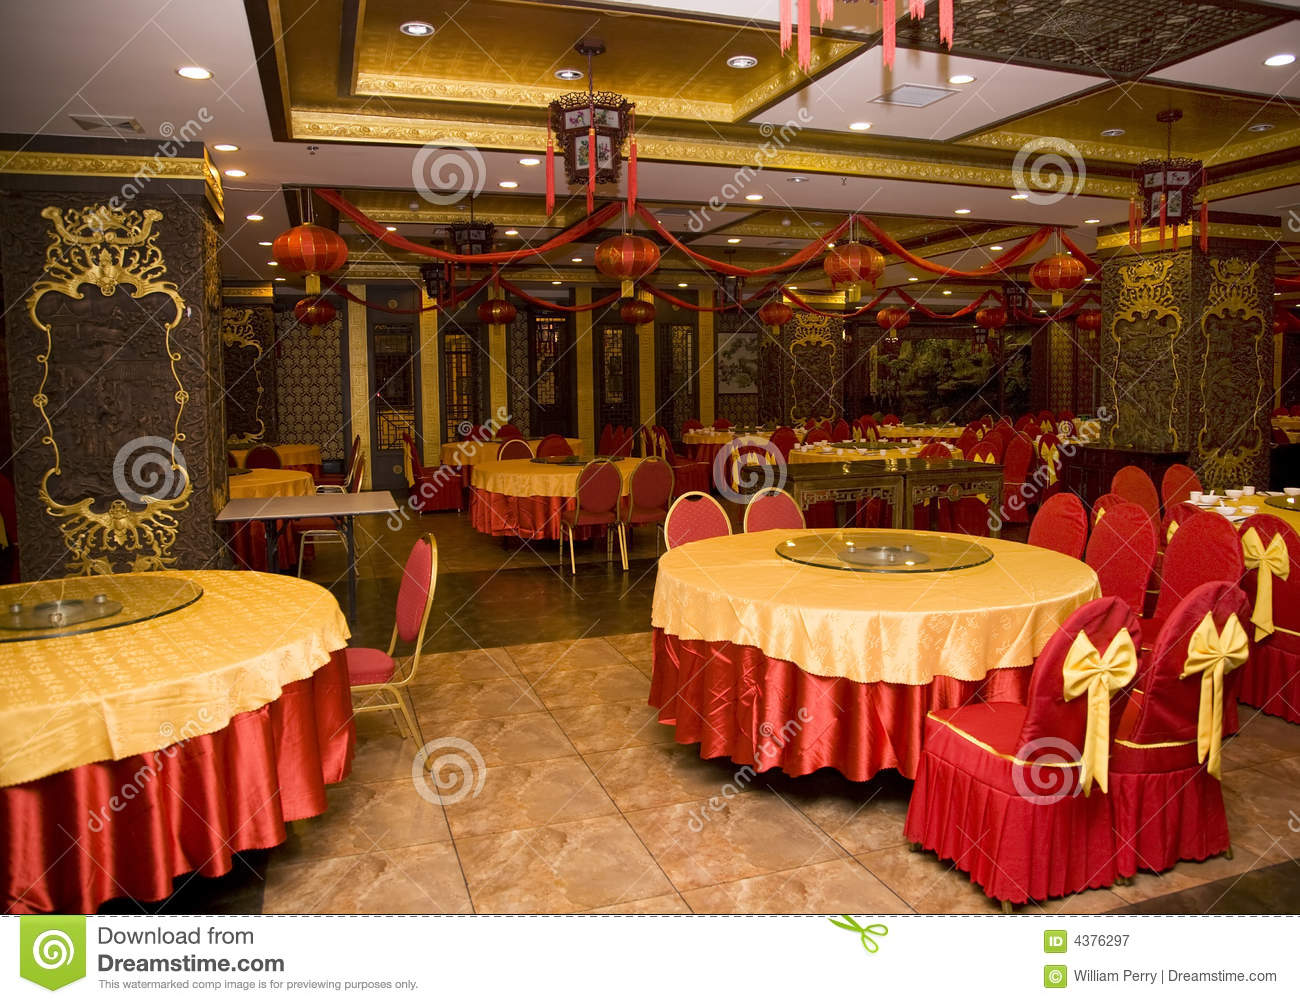 Lunar new year decorations chinese restaurant stock image